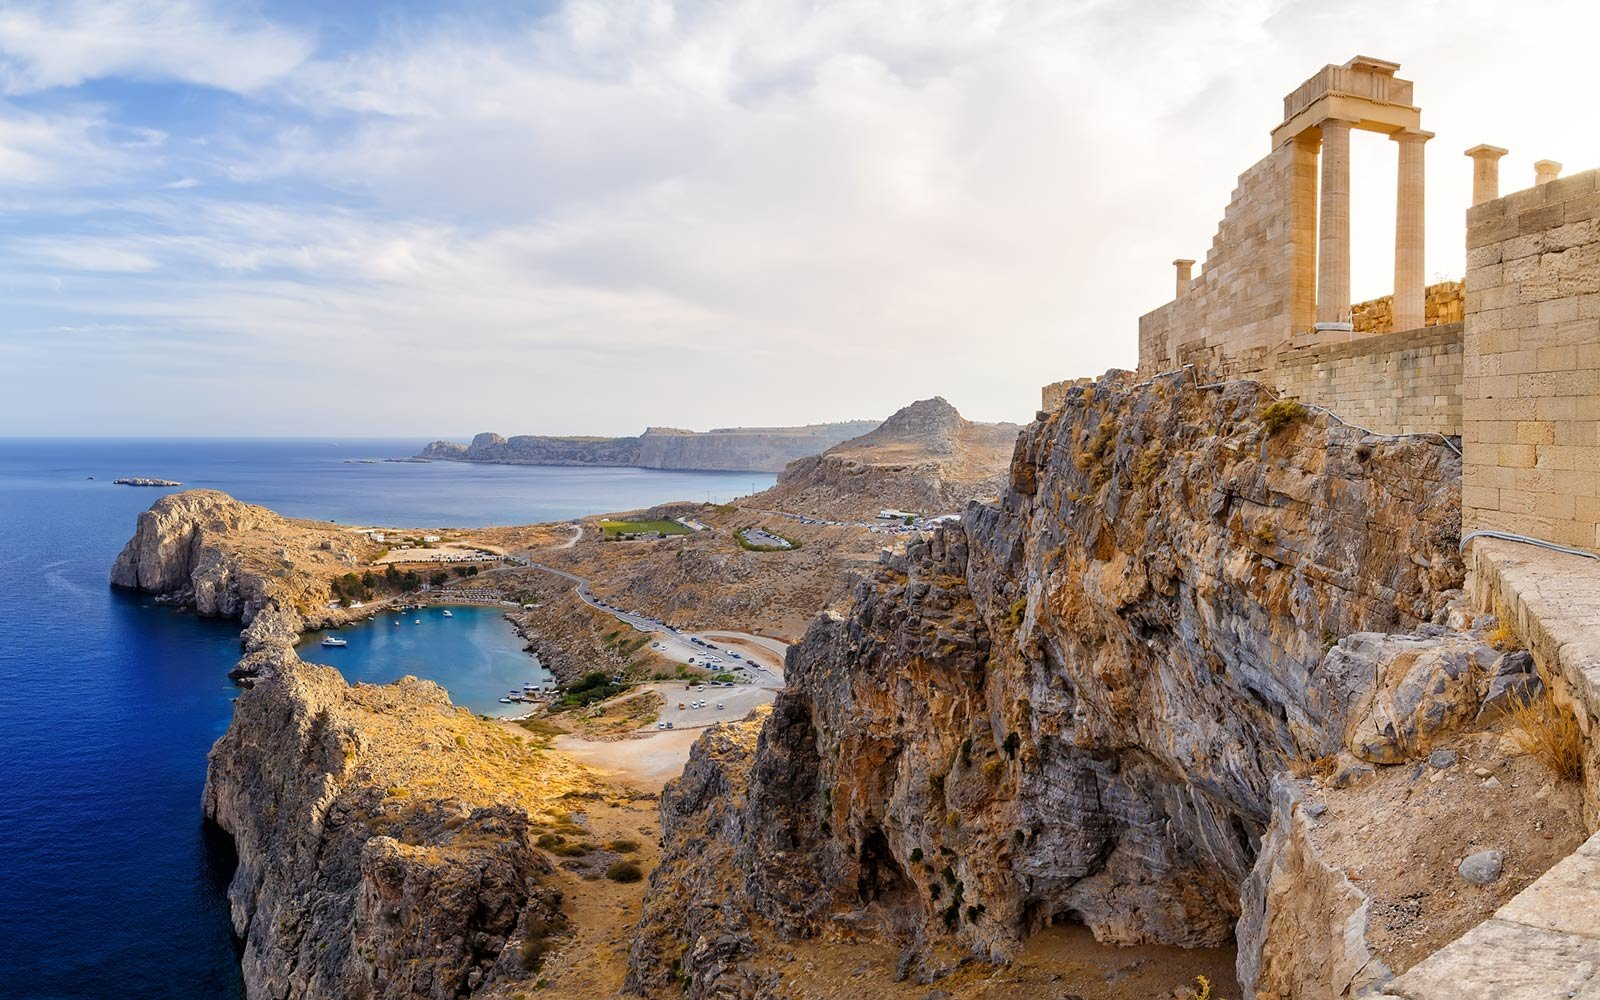 Acropolis of Lindos, Rhodes and Dodecanese